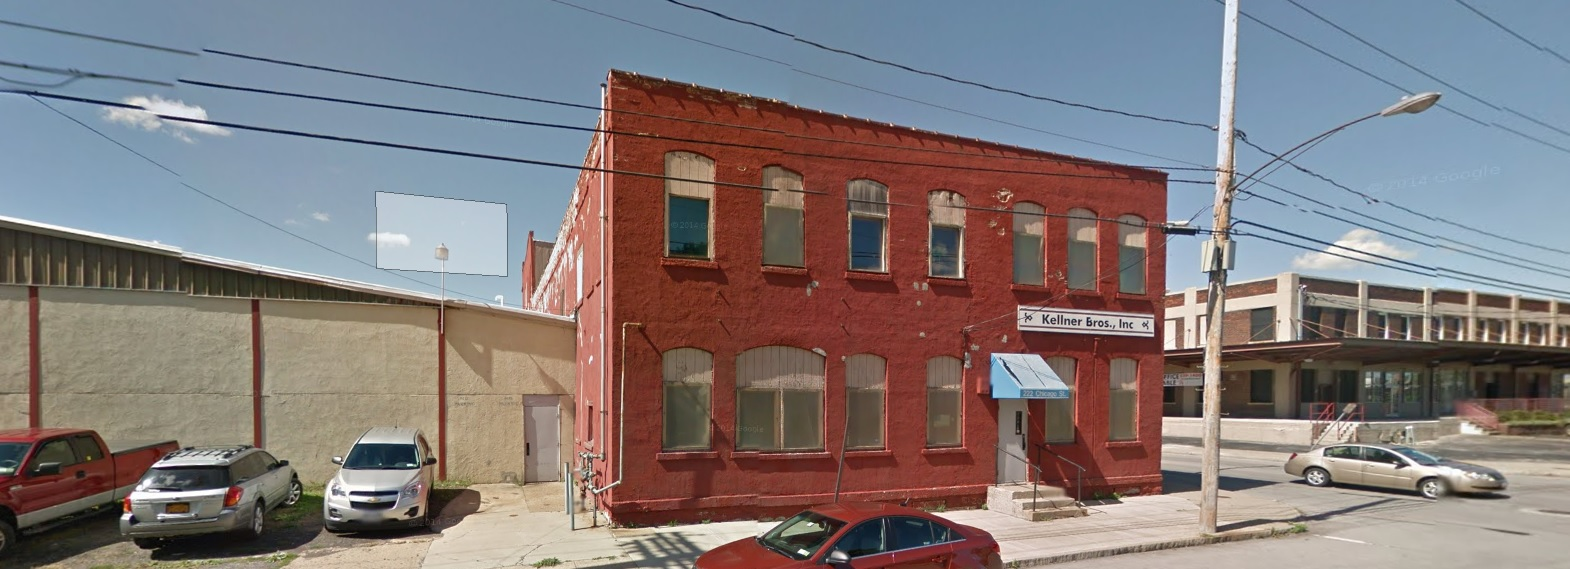 Last fall, the Paladinos bought this building at 222 Chicago St.